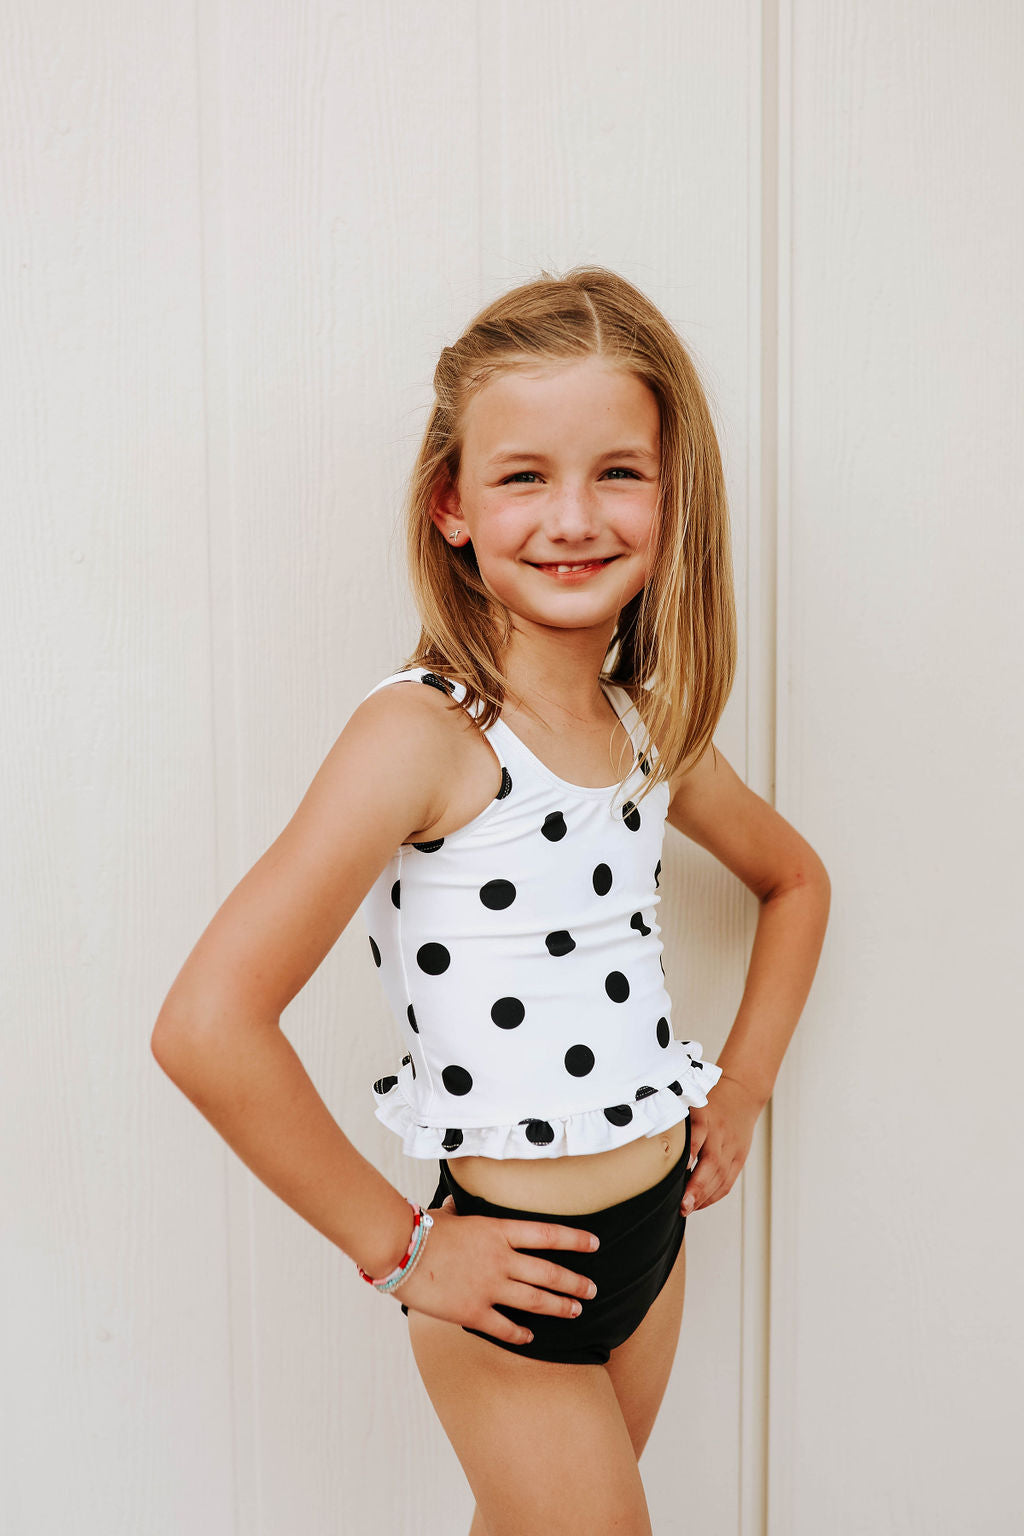 PINK DESERT GIRLS MINI RUFFLE PEPLUM SWIMSUIT SET IN POLKA DOT AND BLACK